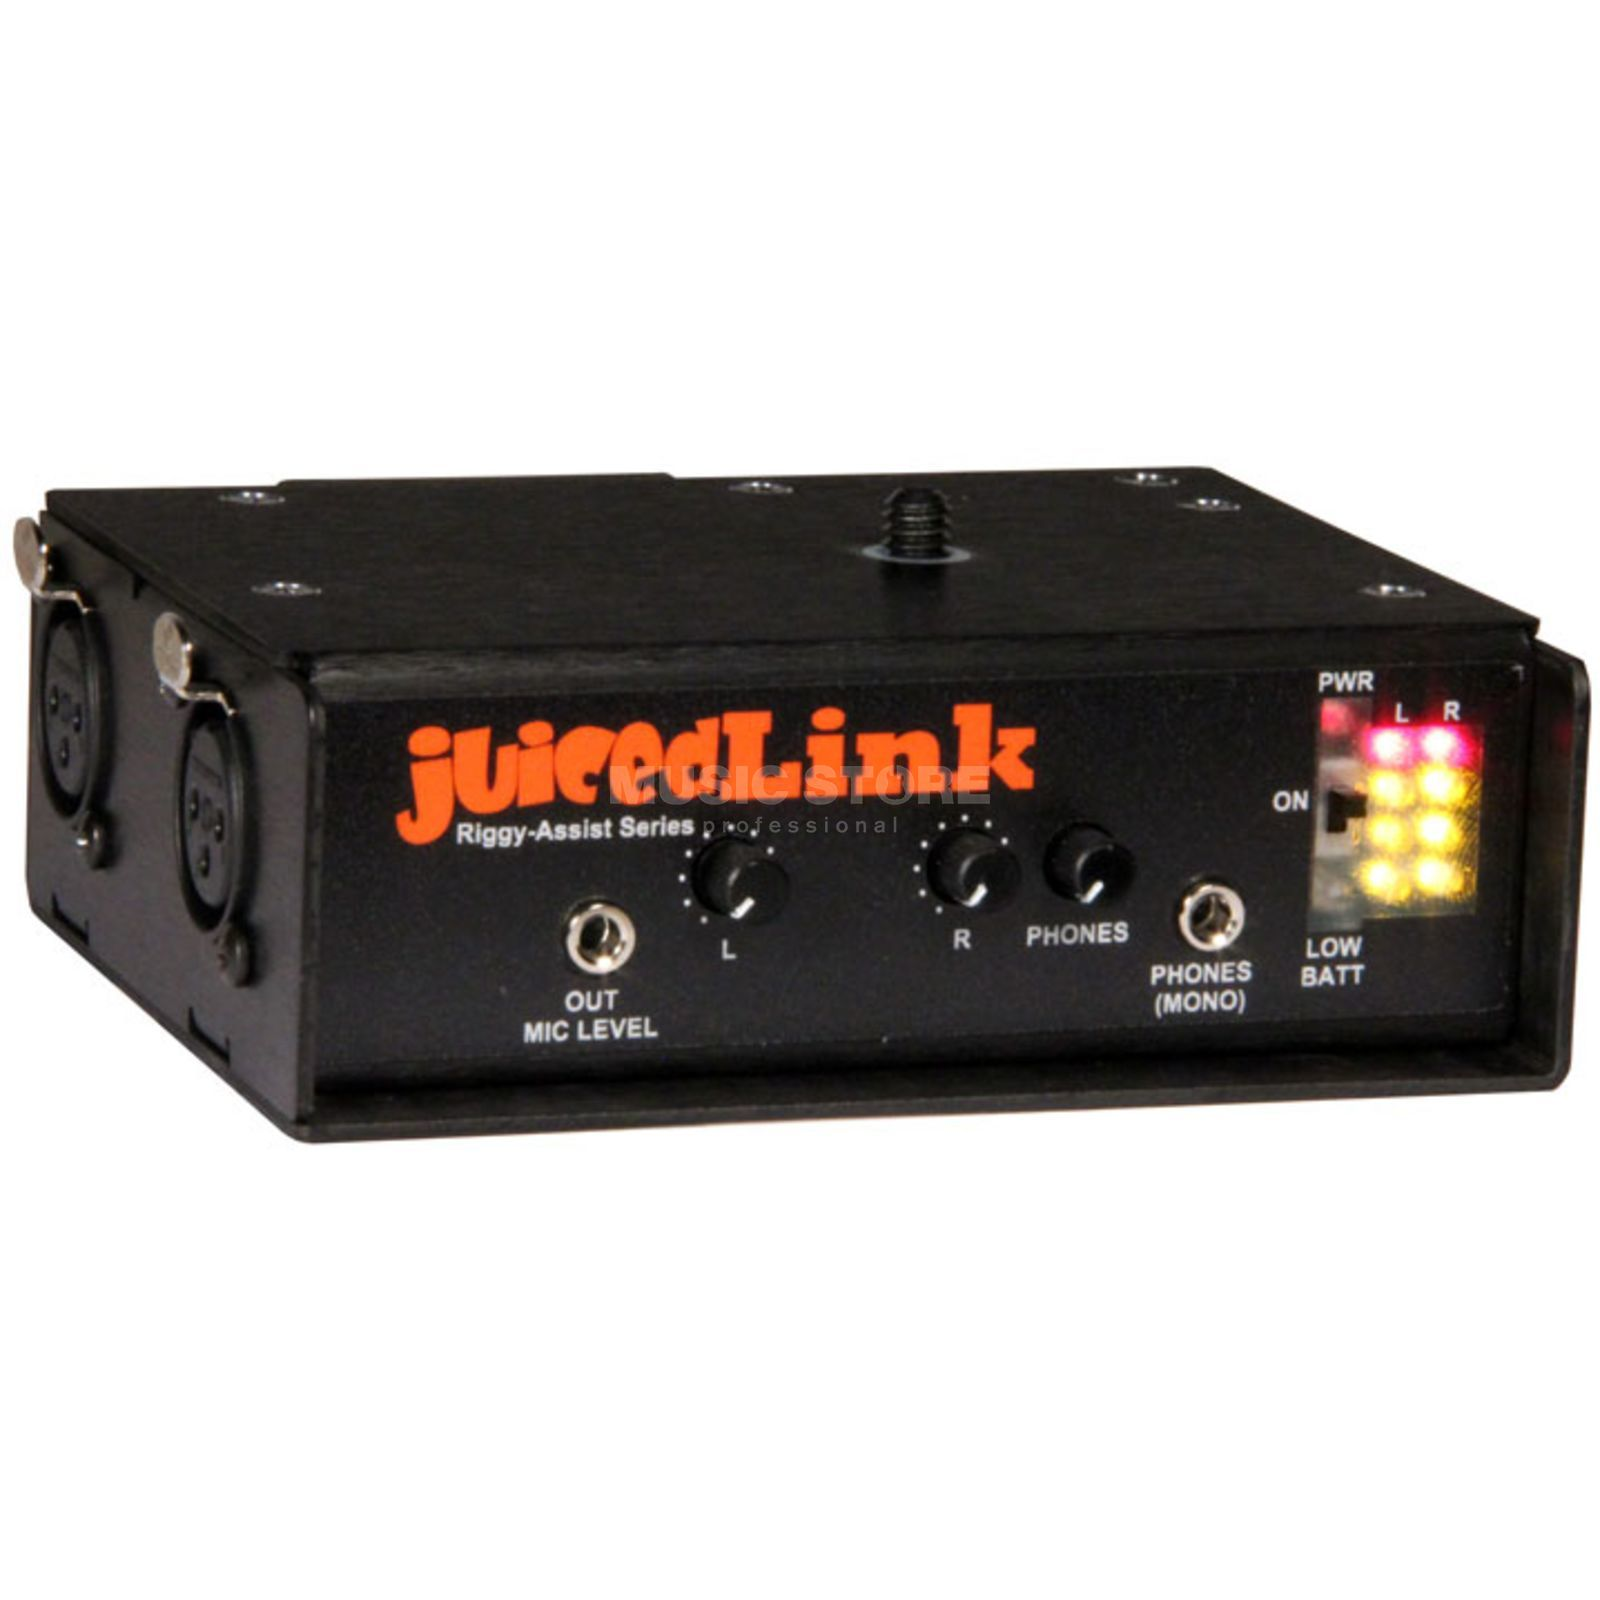 Juiced Link RA222 Riggy-Assist 2 XLR/+48V/HP for Kameras Produktbillede